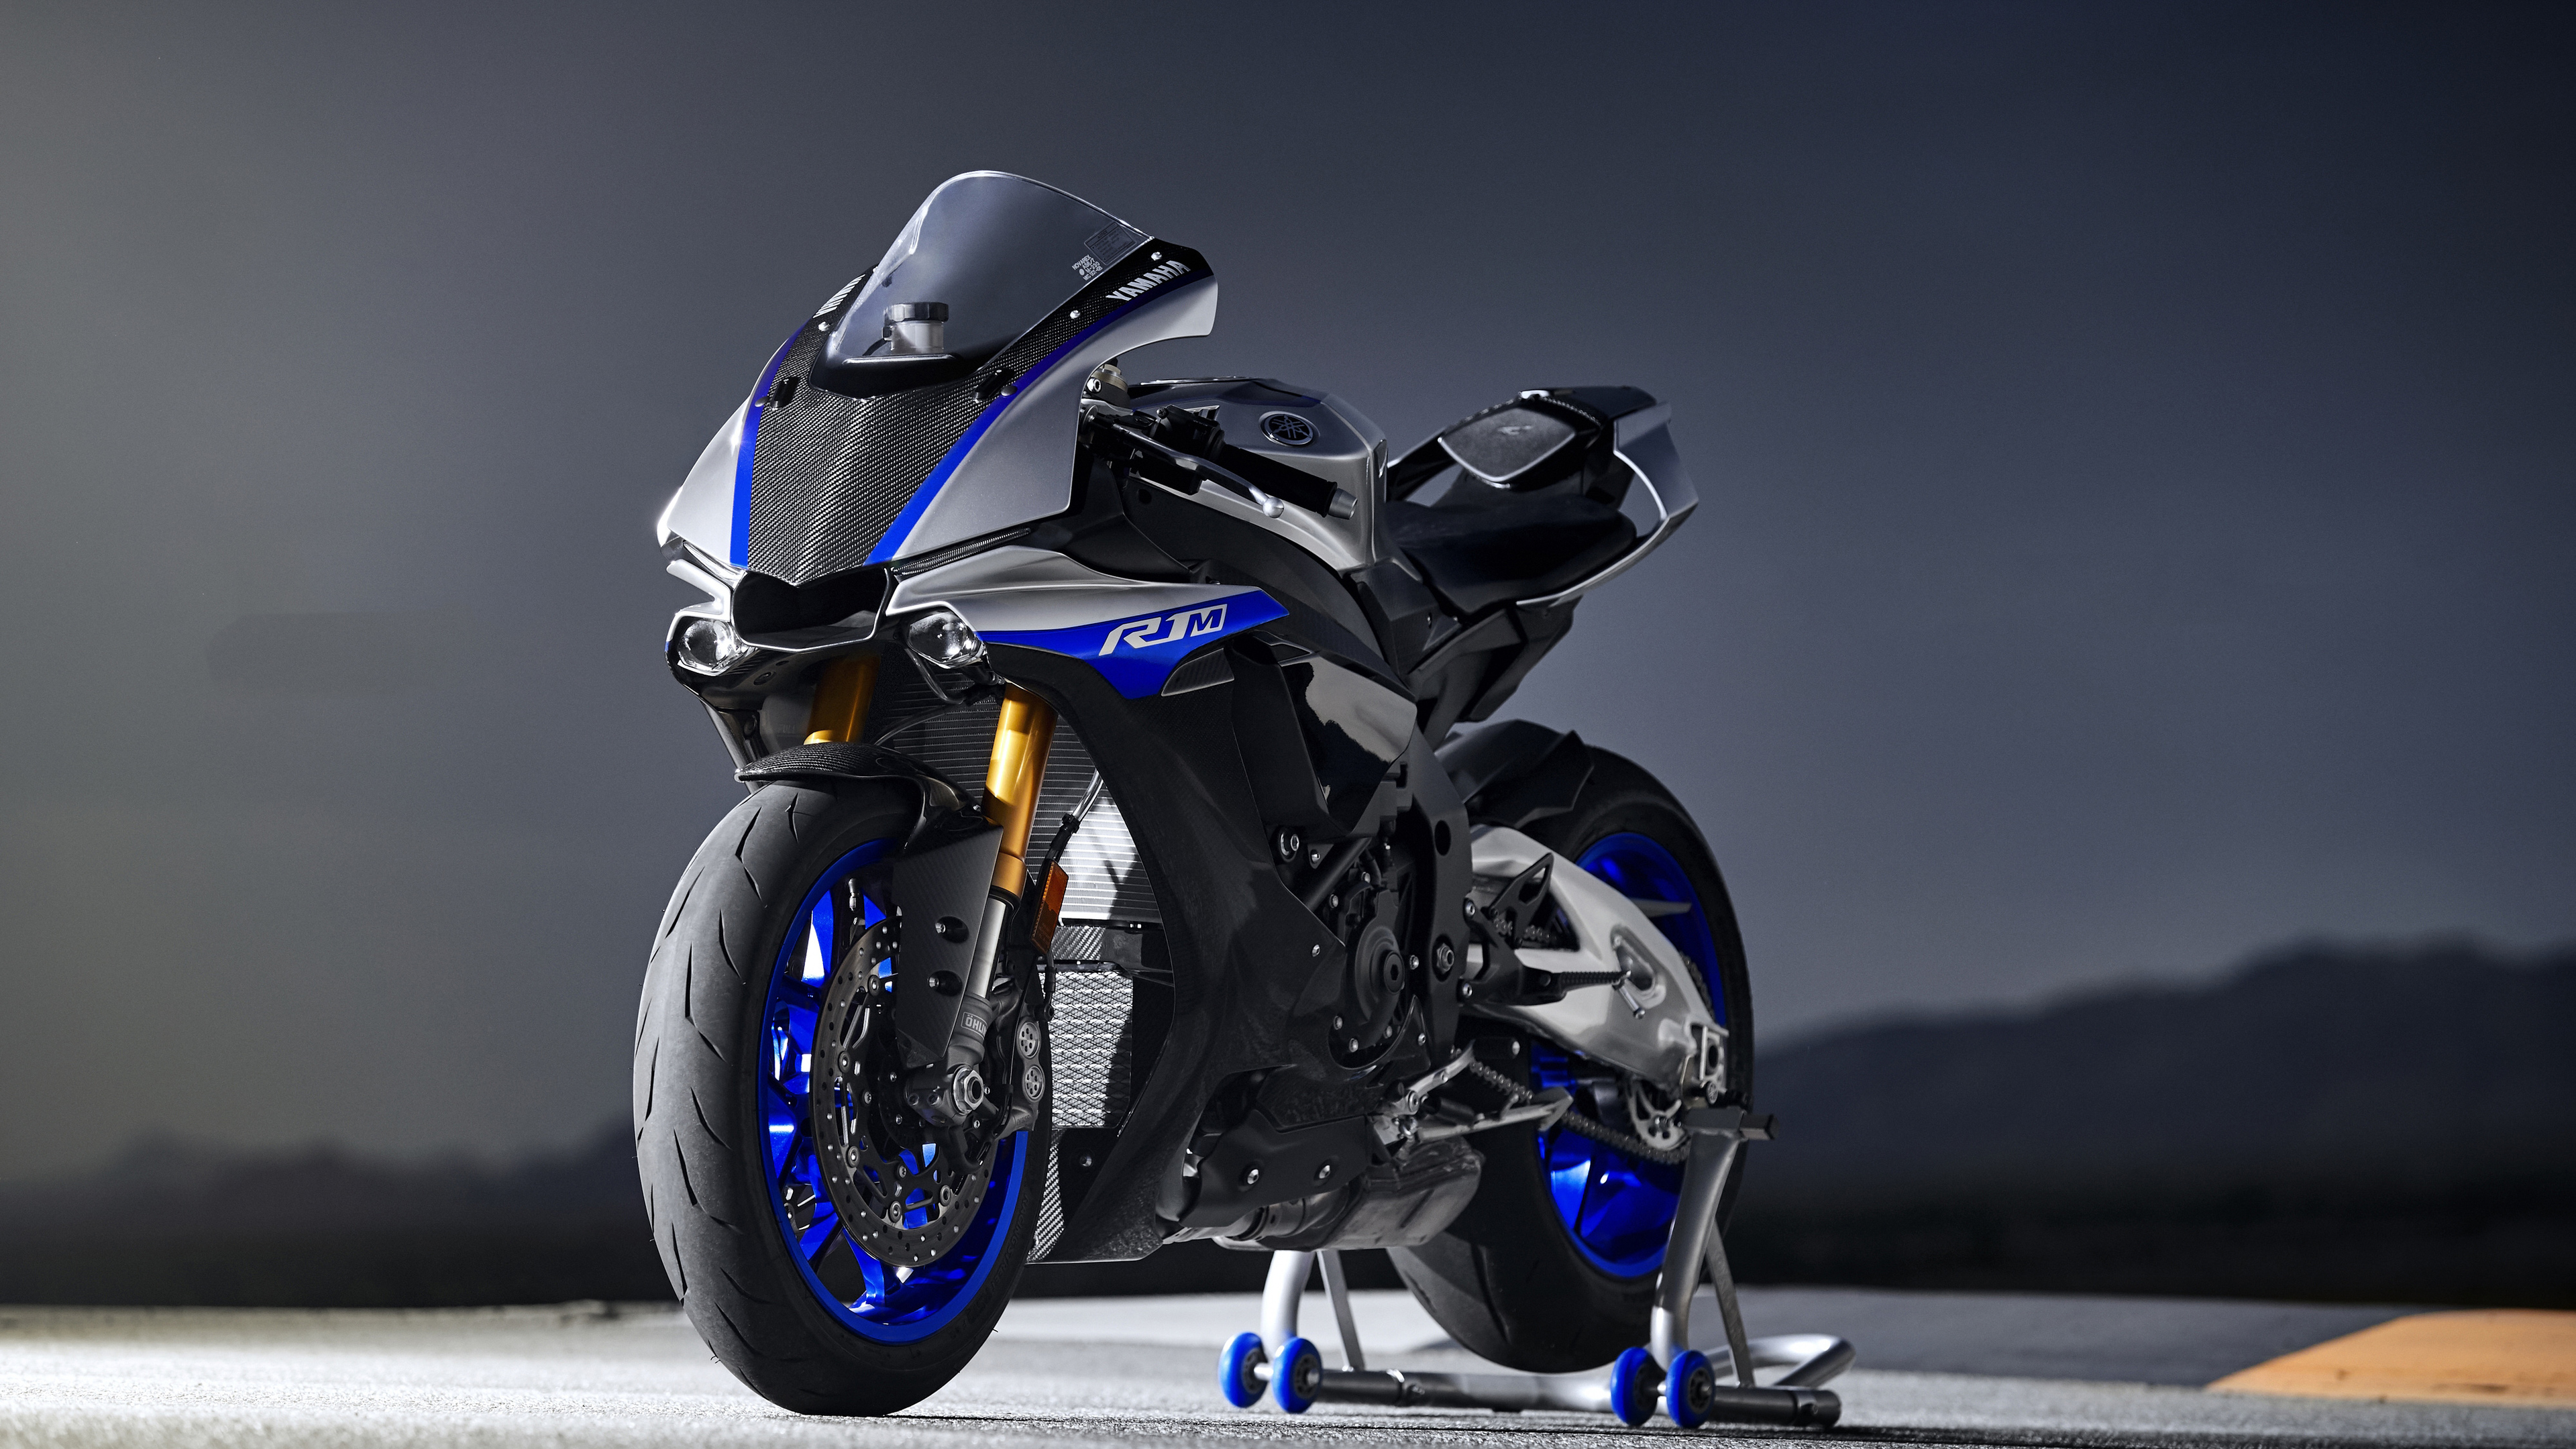 Yamaha R1 4K Yamaha R1 Wallpapers, Hd-wallpapers, Girls